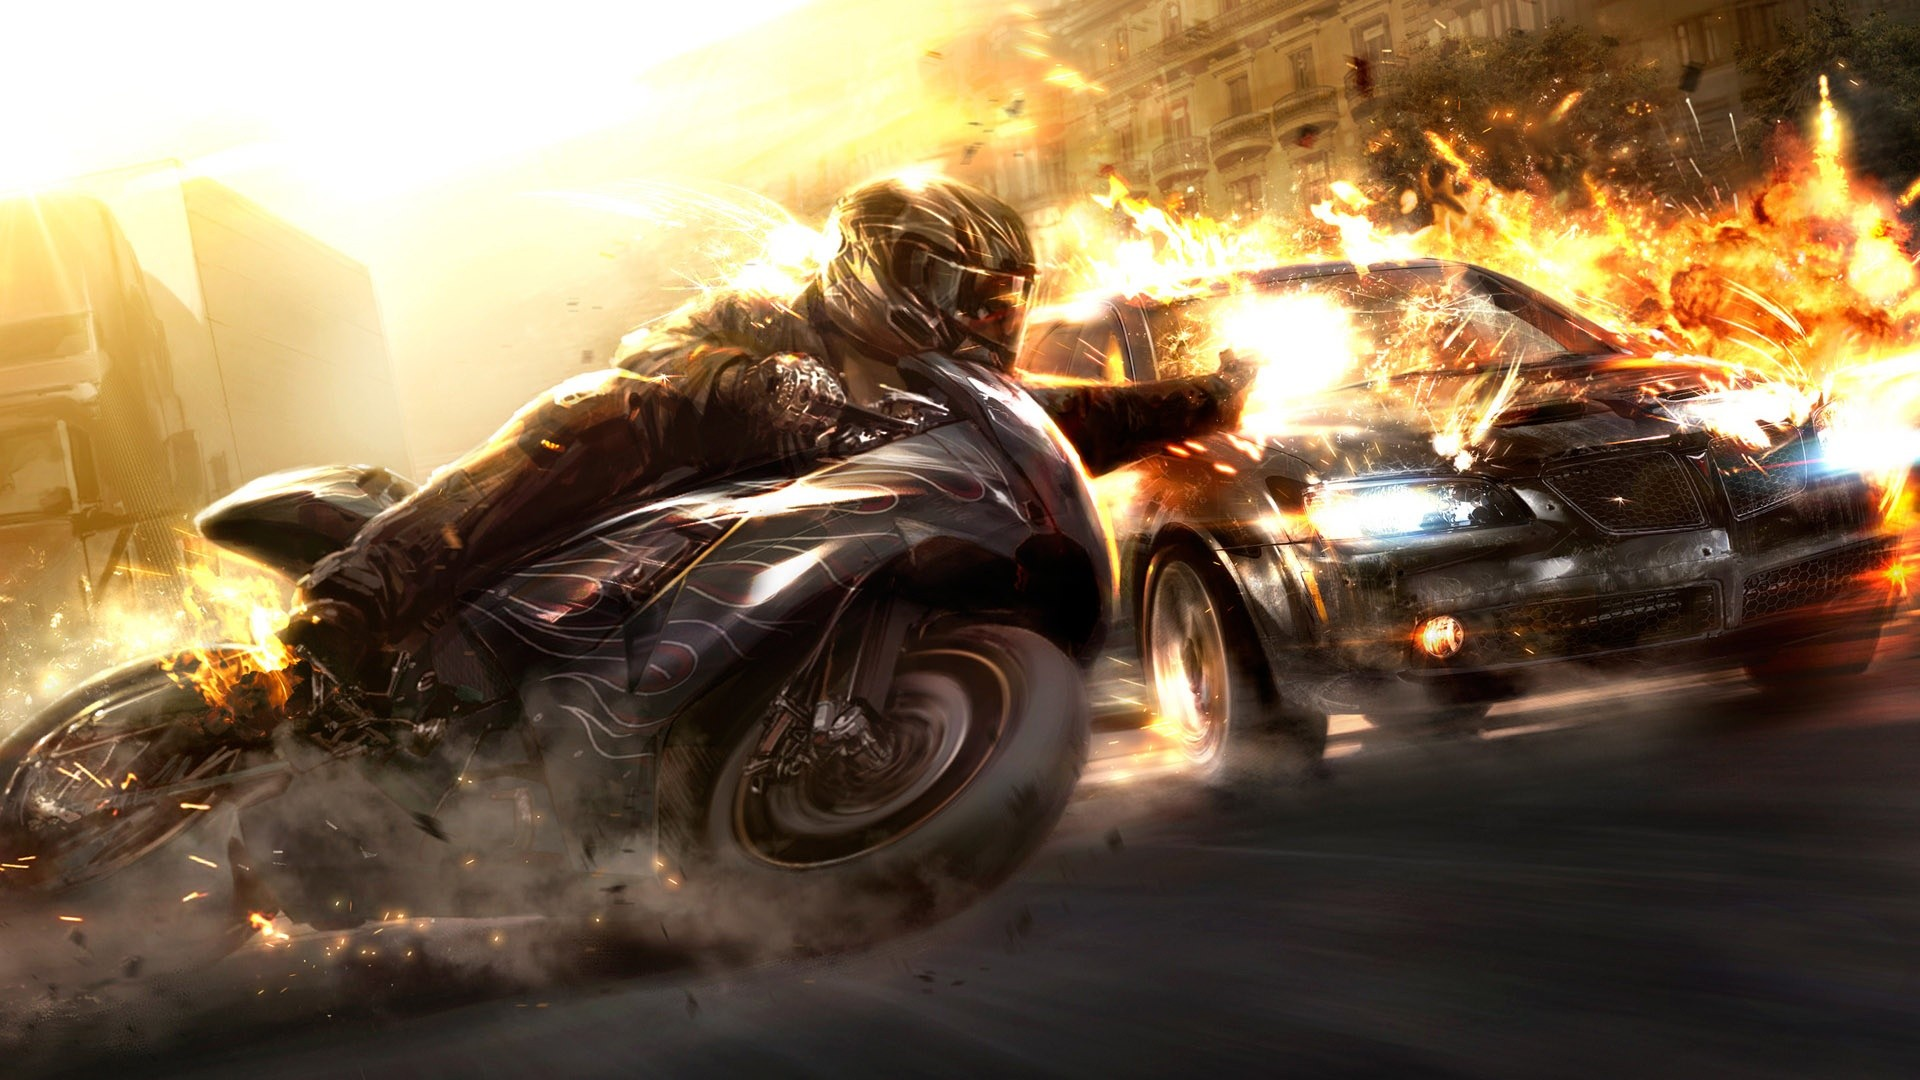 hjotiyhf: hd wallpapers of cars and bikes